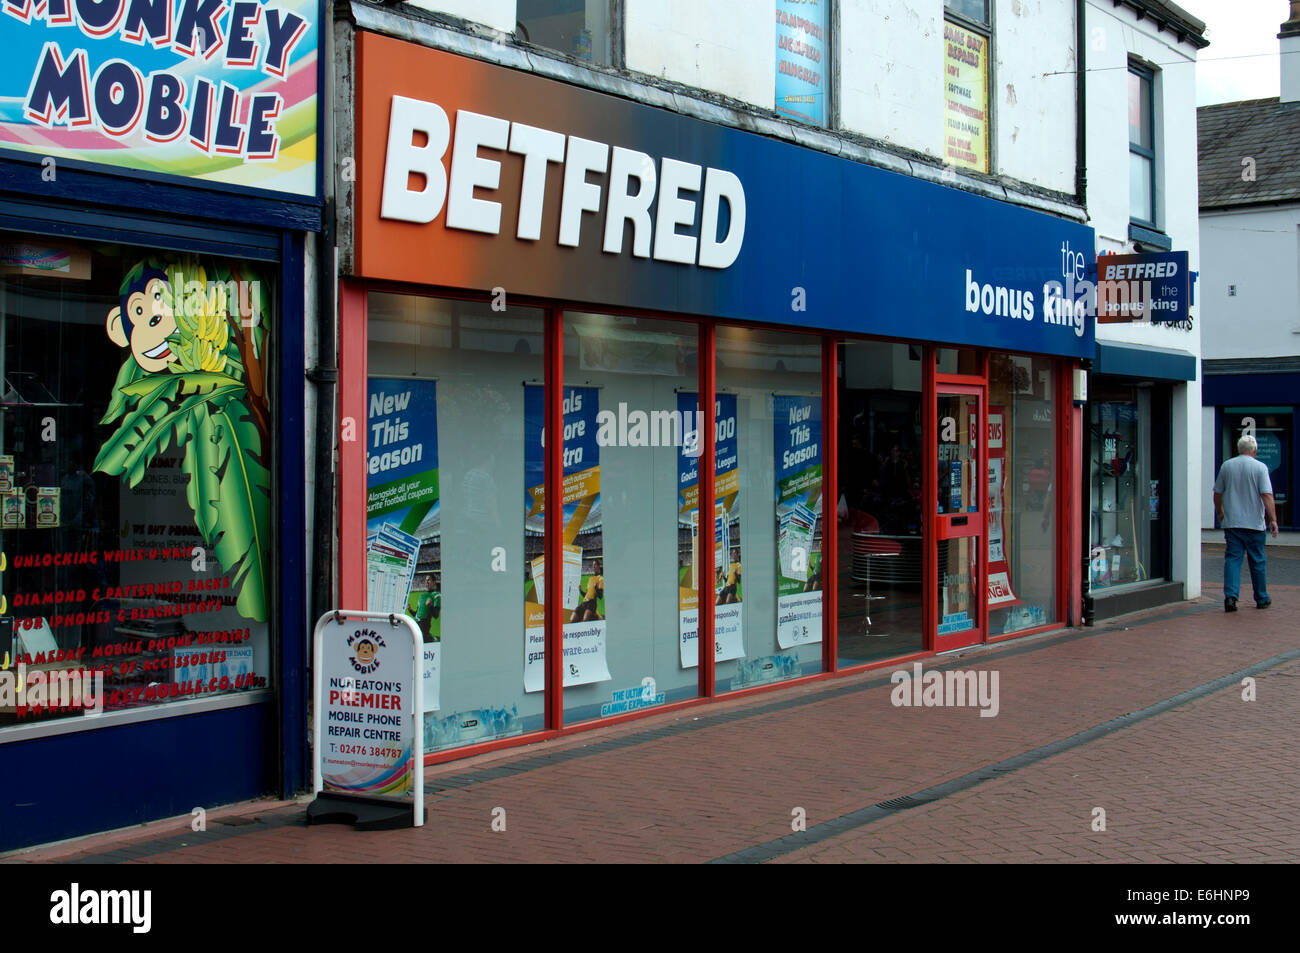 Betfred betting shop, Nuneaton, Warwickshire, England, UK - Stock Image